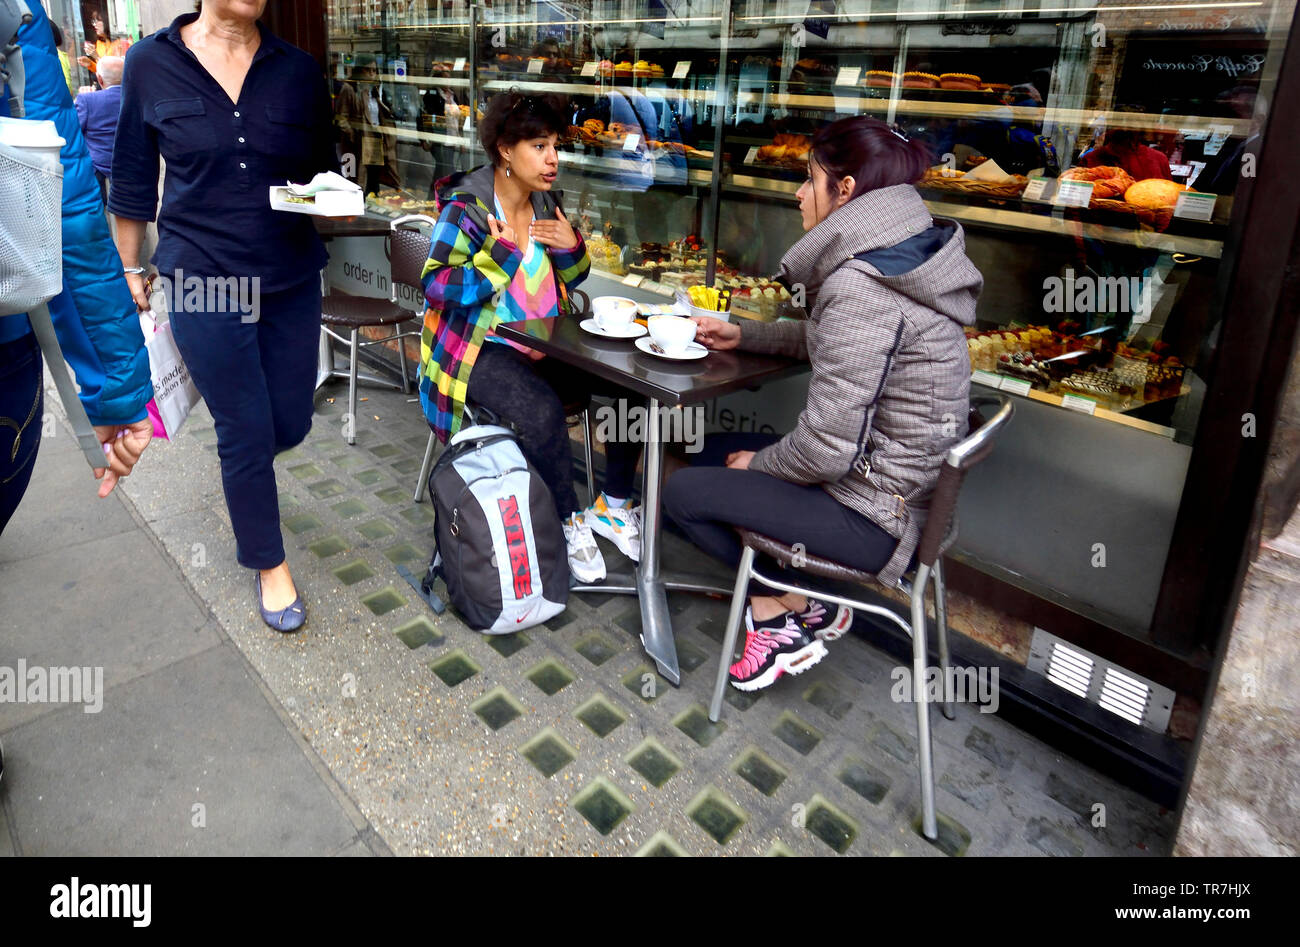 London, England, UK. People sitting at a table outside a cafe in Piccadilly - Stock Image